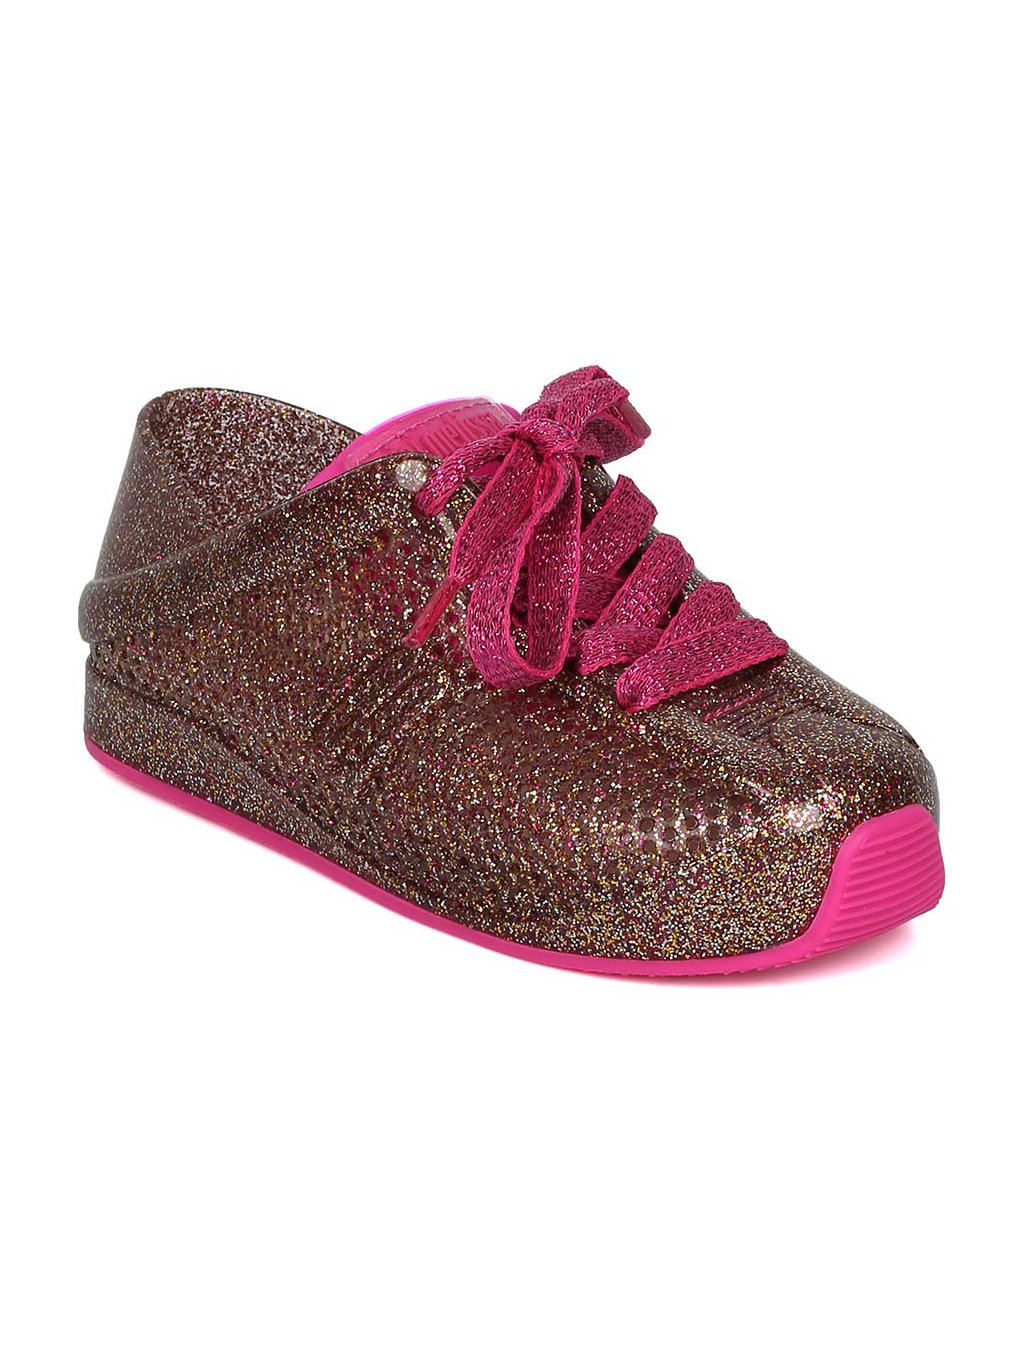 Melissa Mini Mini Love System PVC Perforated Lace up Sneaker HC08 - Glass Pink (Size: Toddler 7)